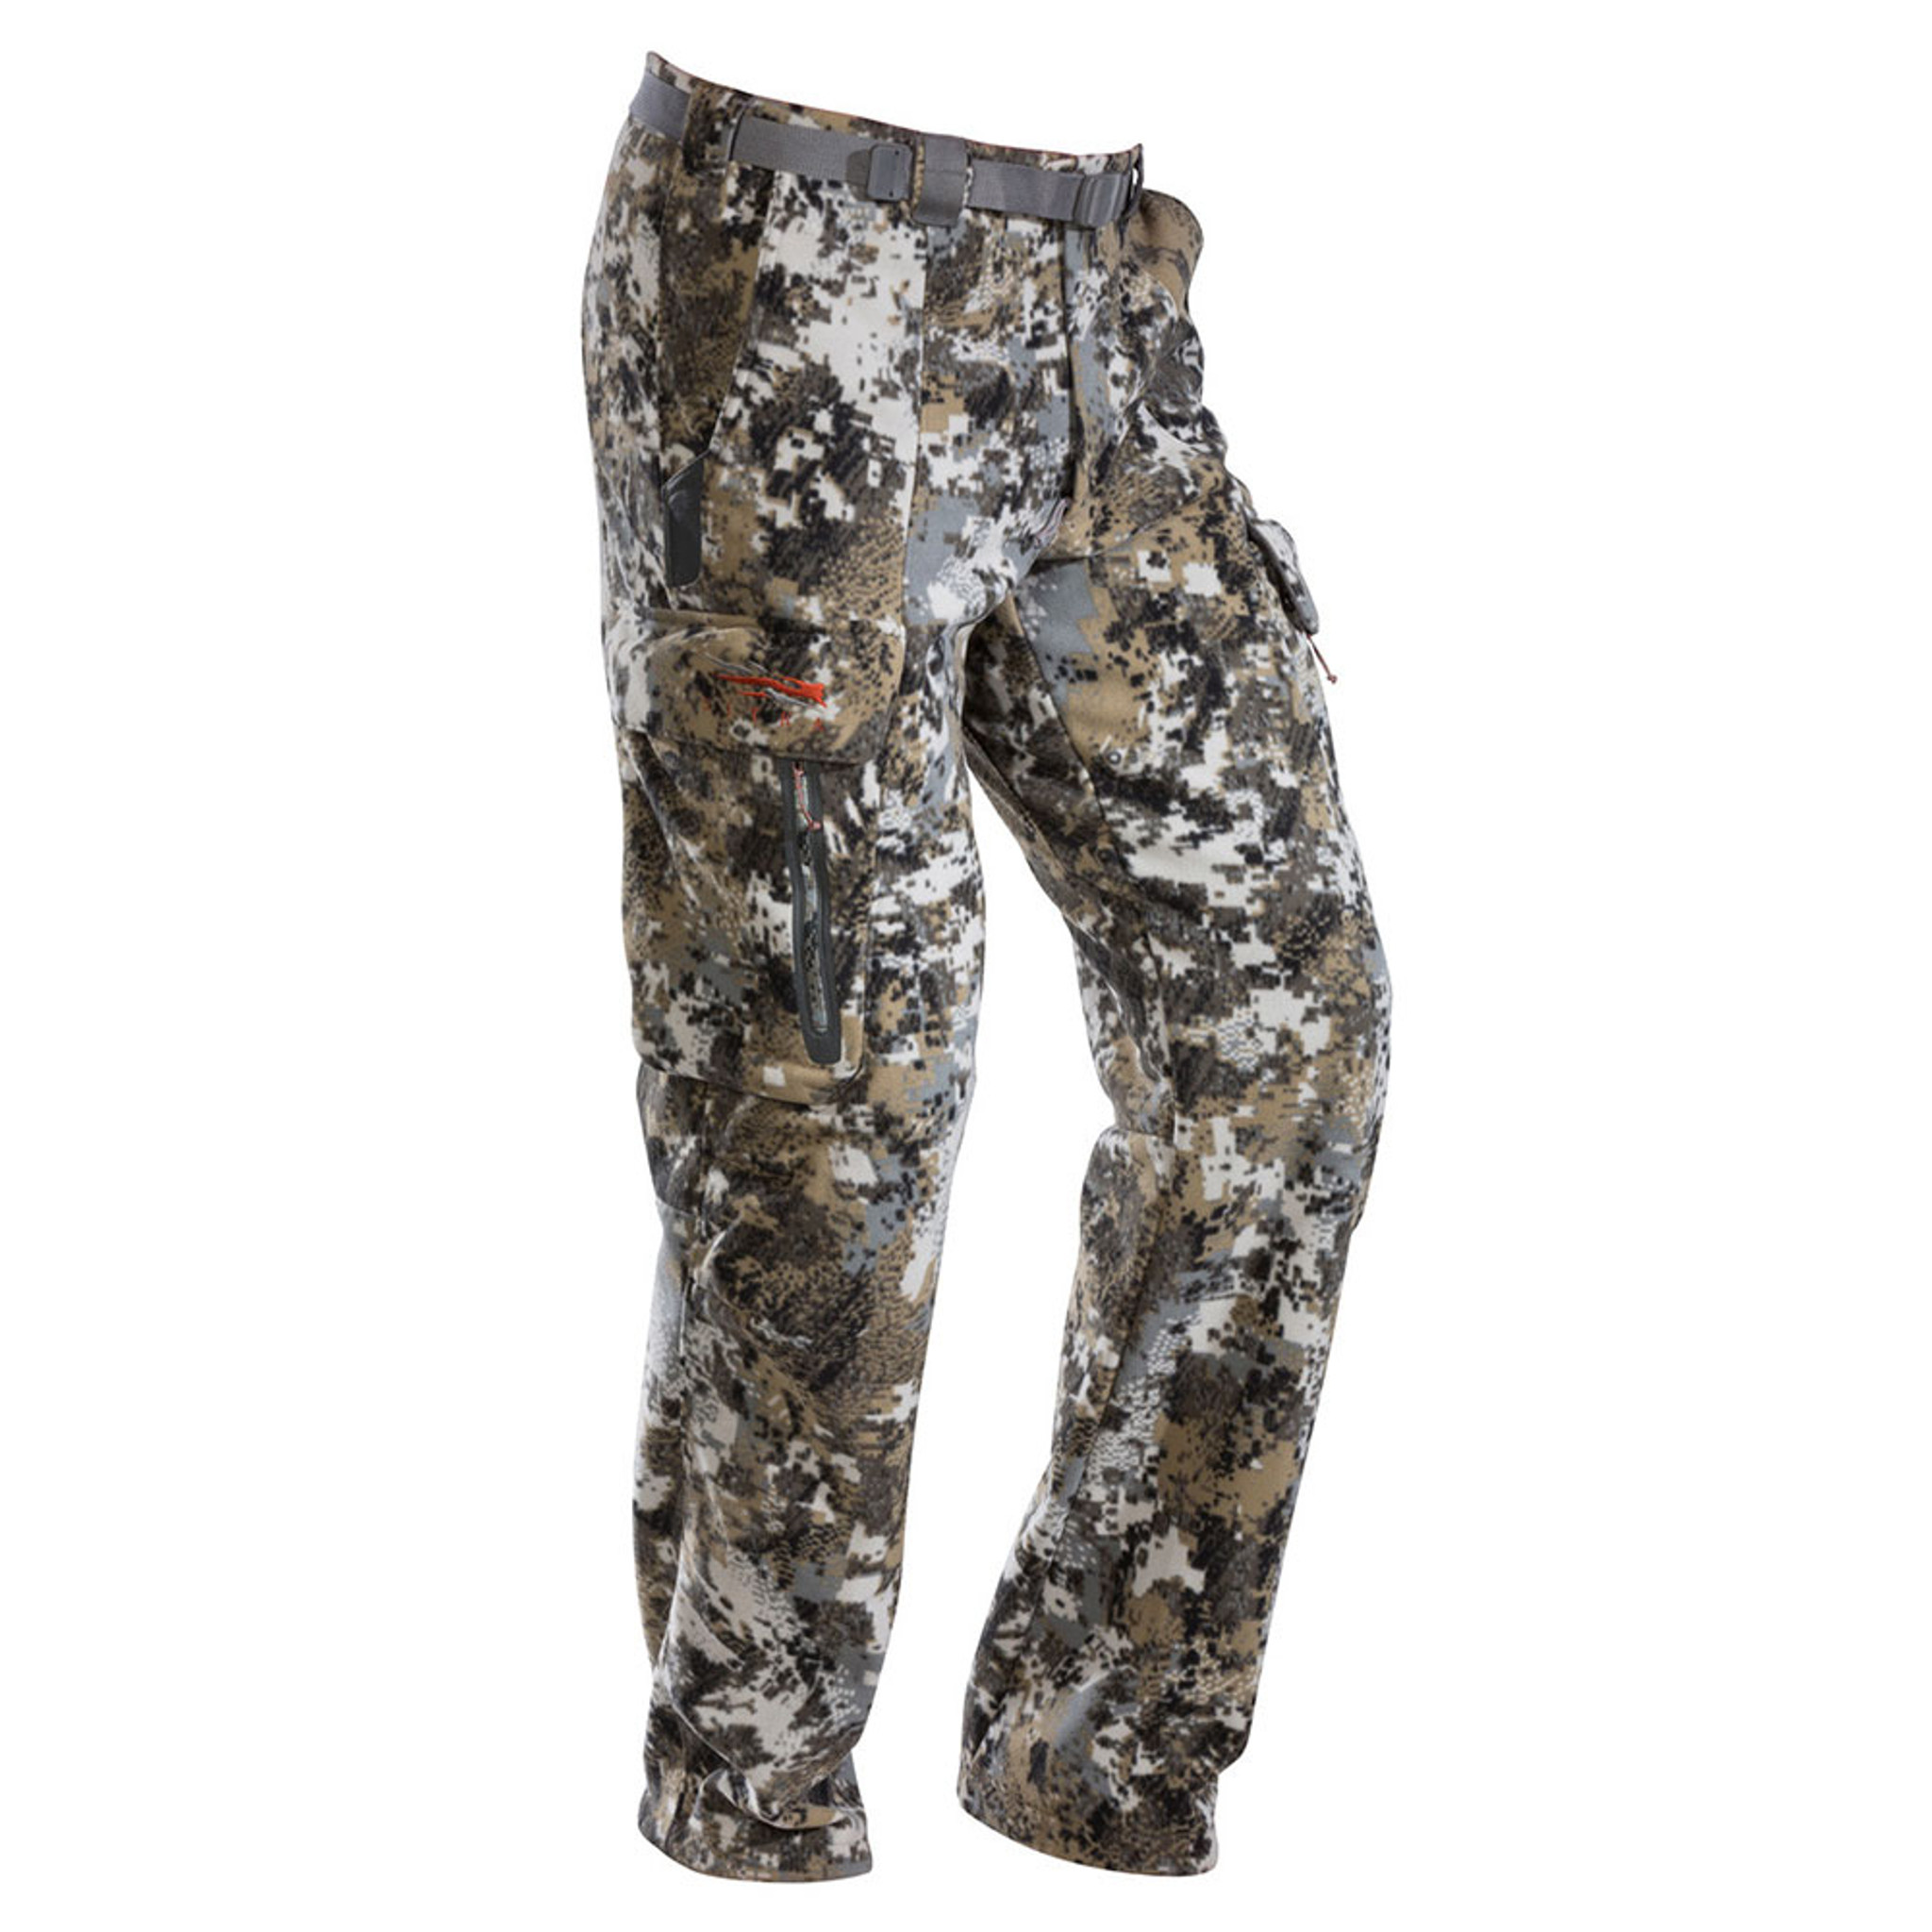 c228bf20786 SITKA STRATUS PANT ELEVATED II - Heights Outdoors